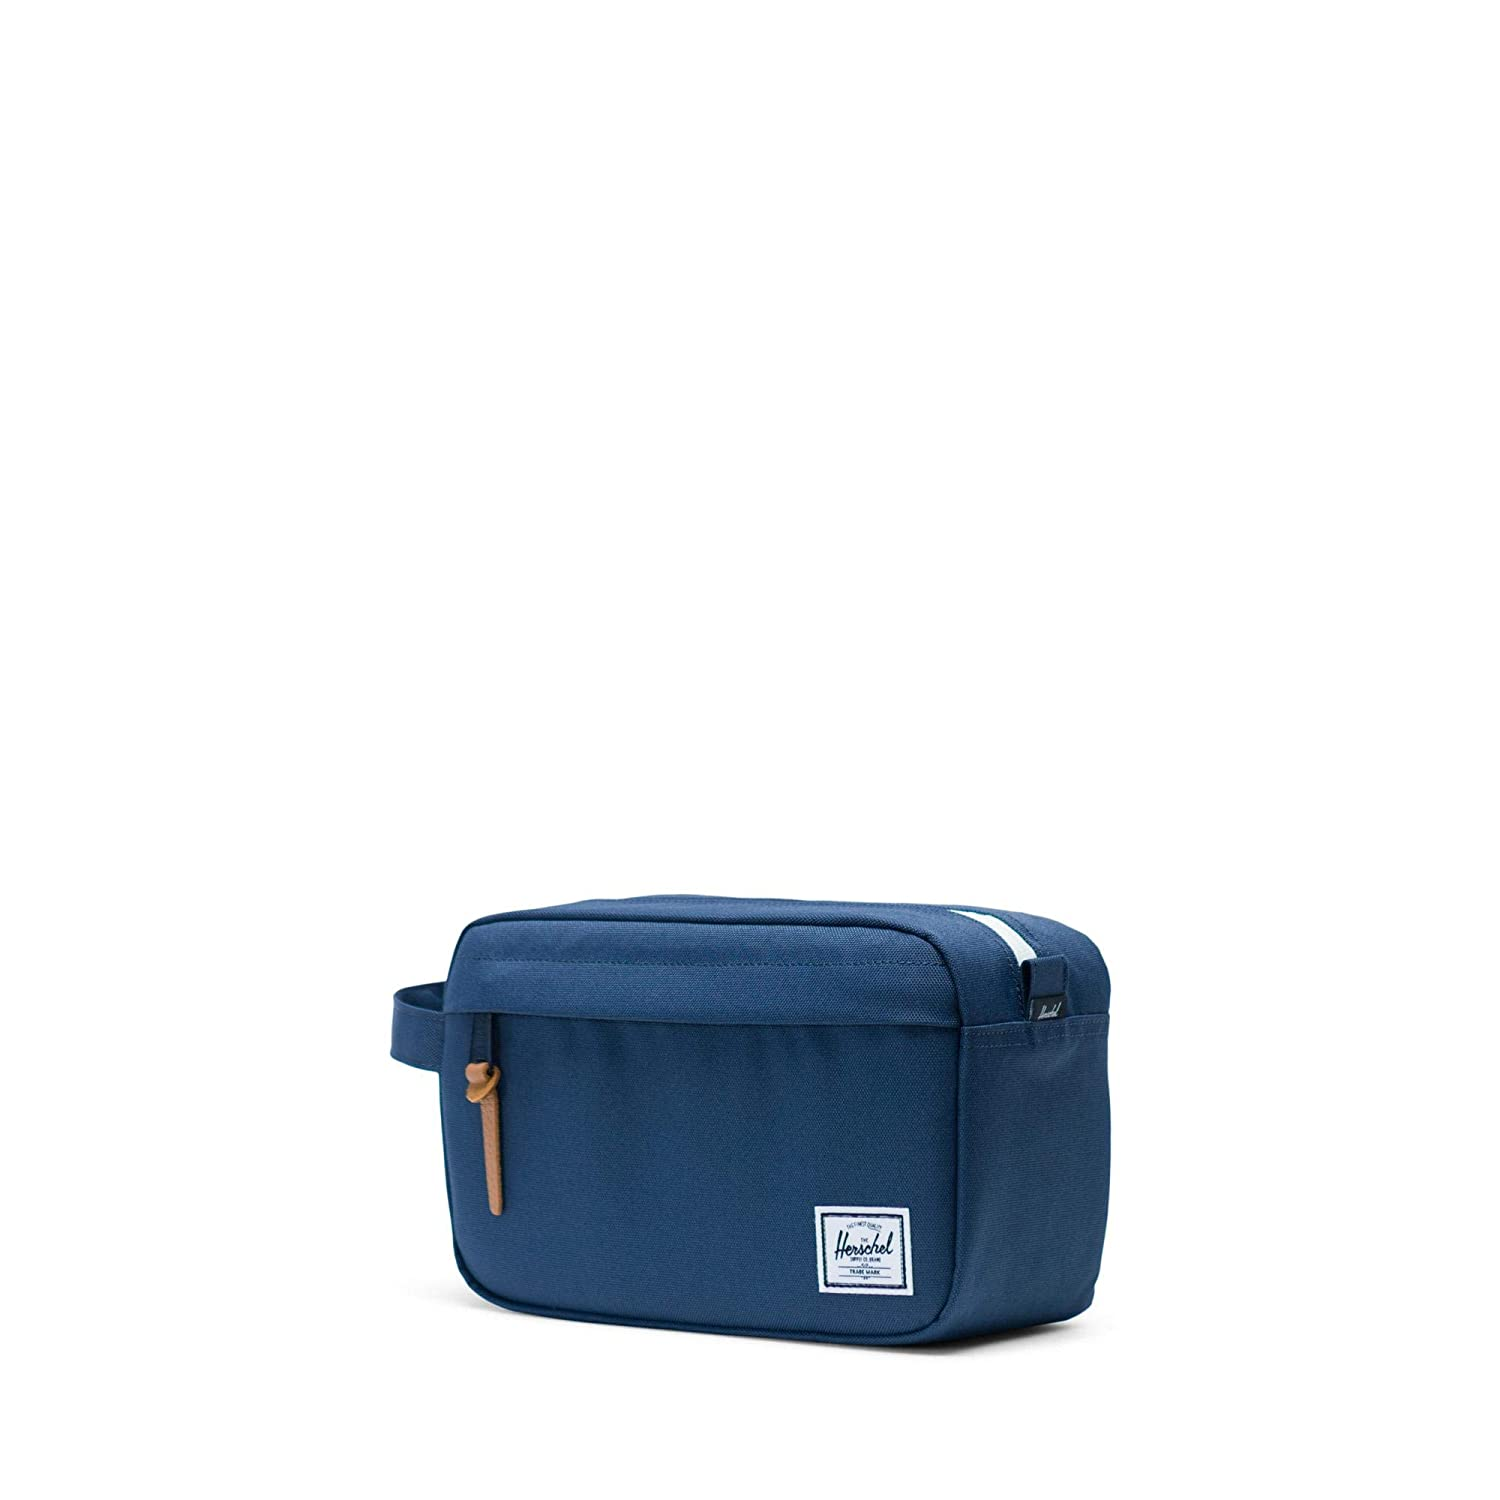 8fac166e47 Herschel Supply Co. Chapter Travel Kit: Amazon.in: Bags, Wallets & Luggage